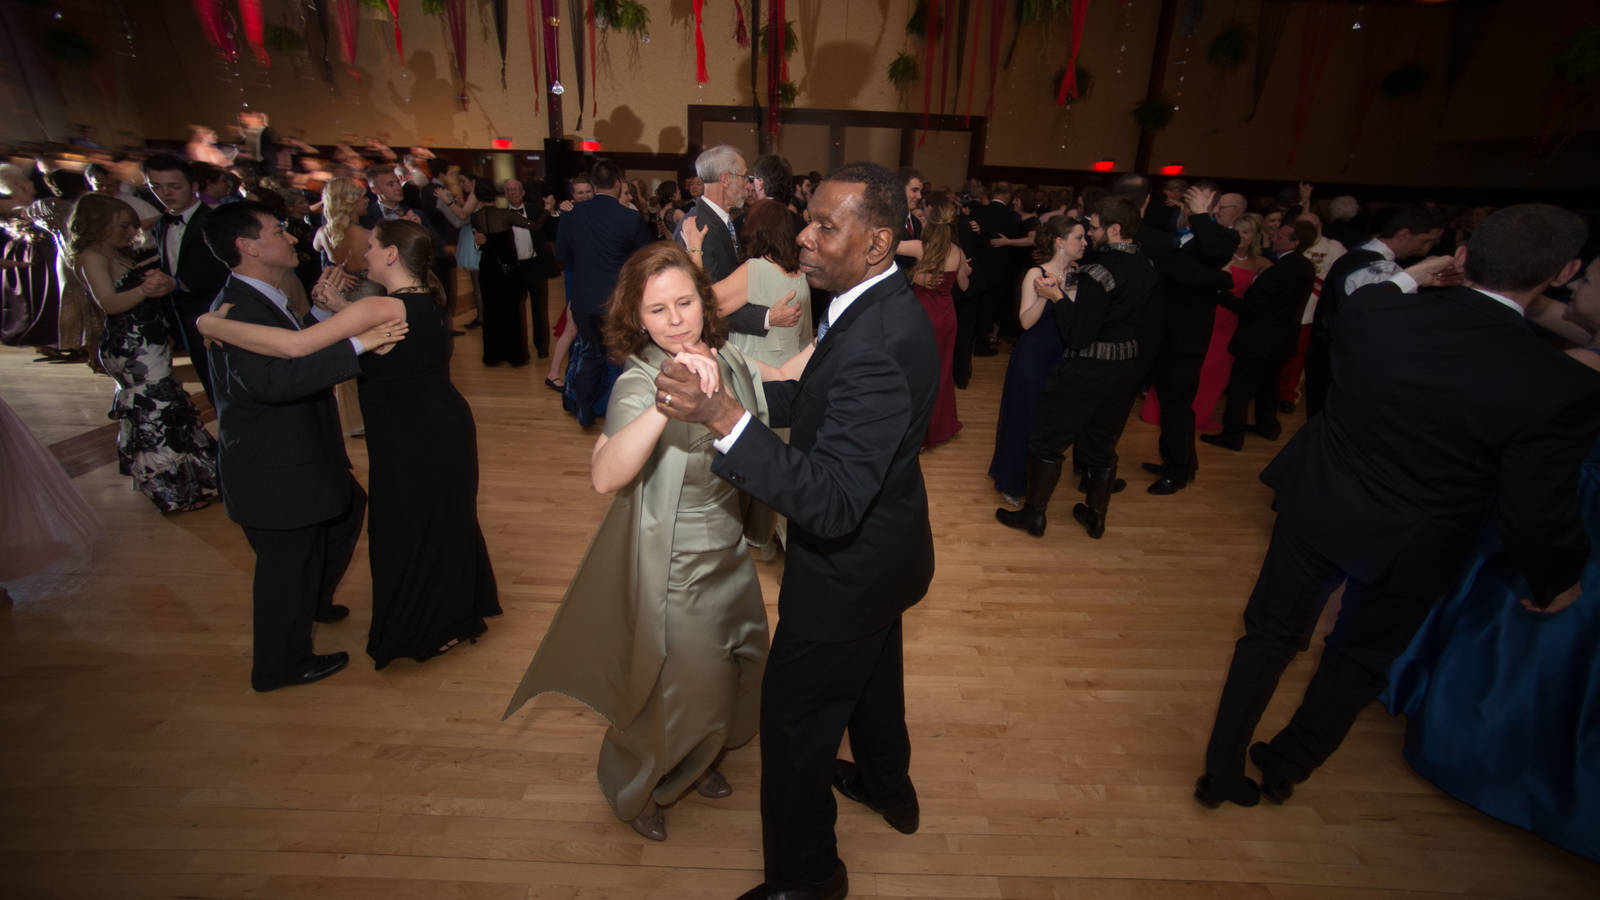 Couples on the dance floor at the Viennese Ball at UW-Eau Claire